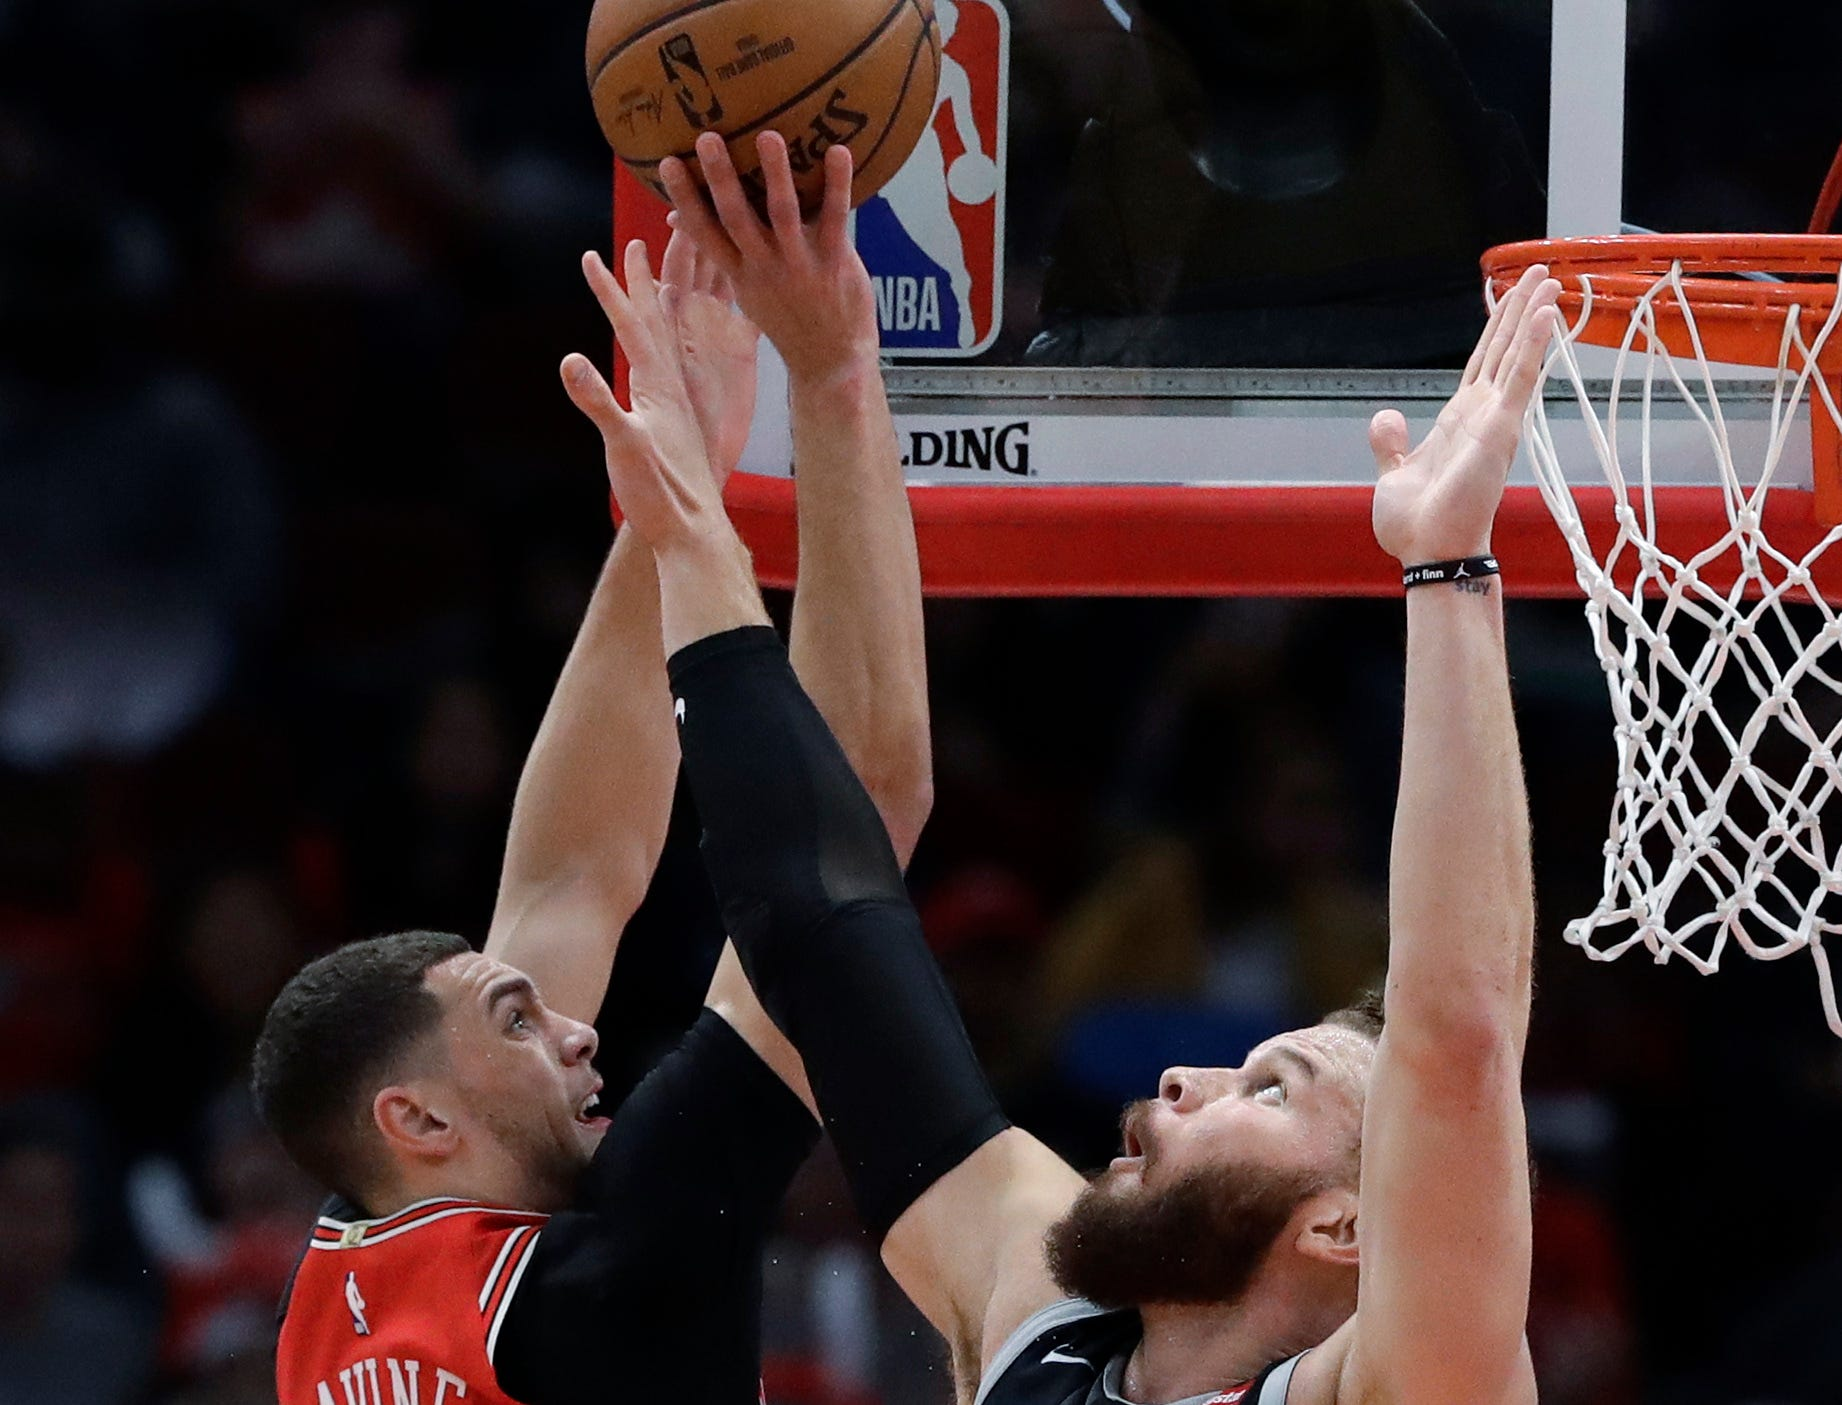 Chicago Bulls guard Zach LaVine, left, shoots against Detroit Pistons forward Blake Griffin during the first half of an NBA basketball game Friday, March 8, 2019, in Chicago.